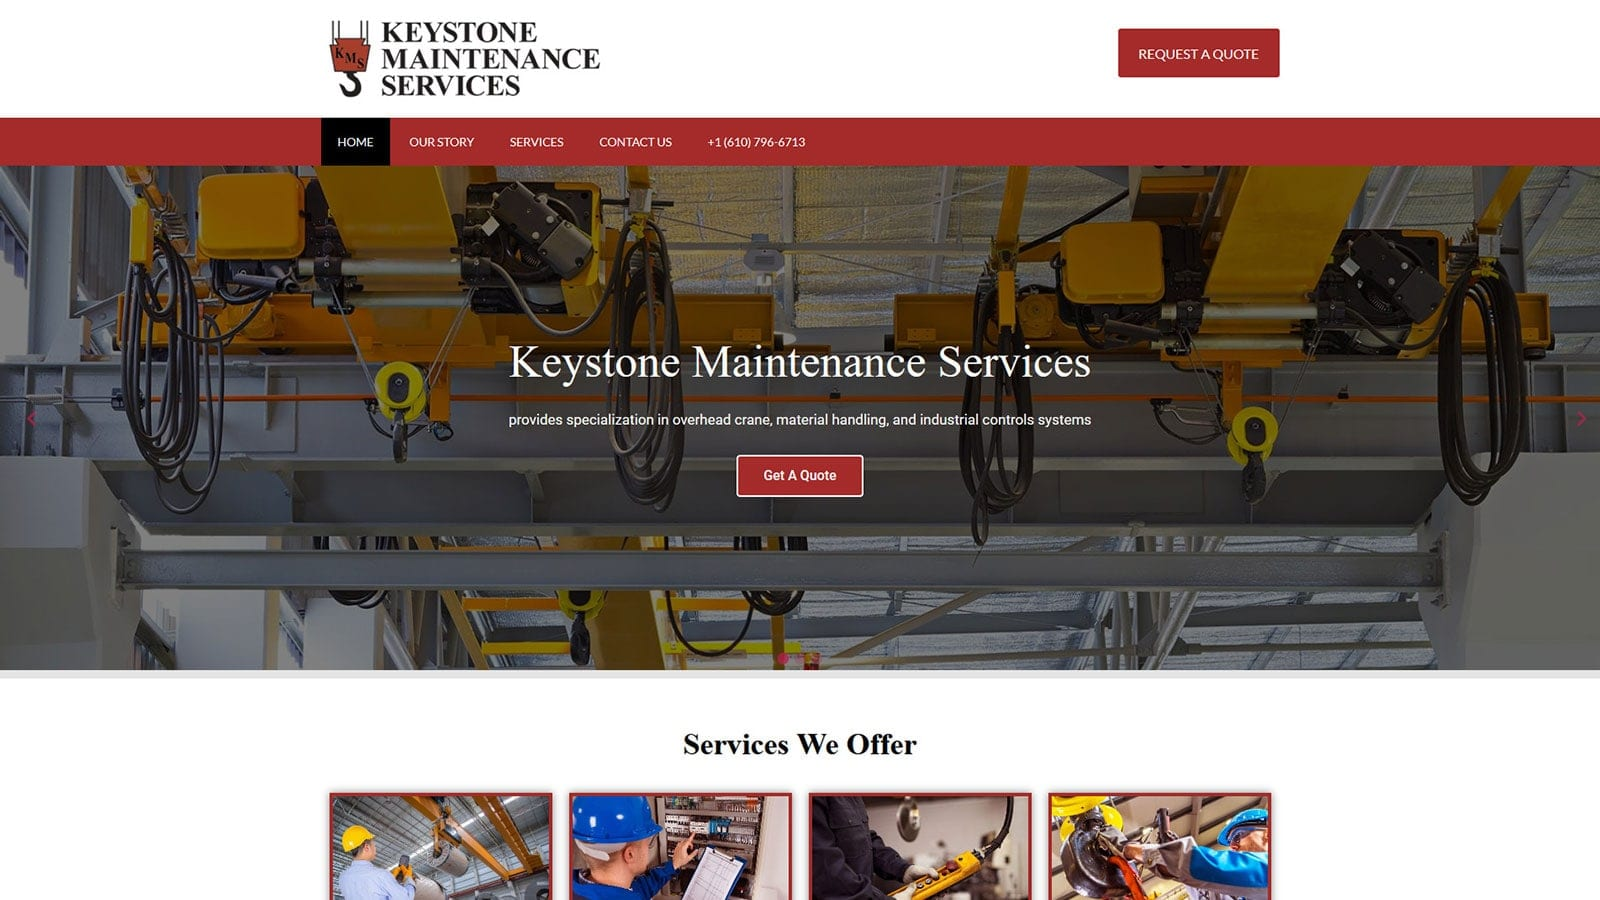 Mohnton Company Website Redesign – Keystone Maintenance Services